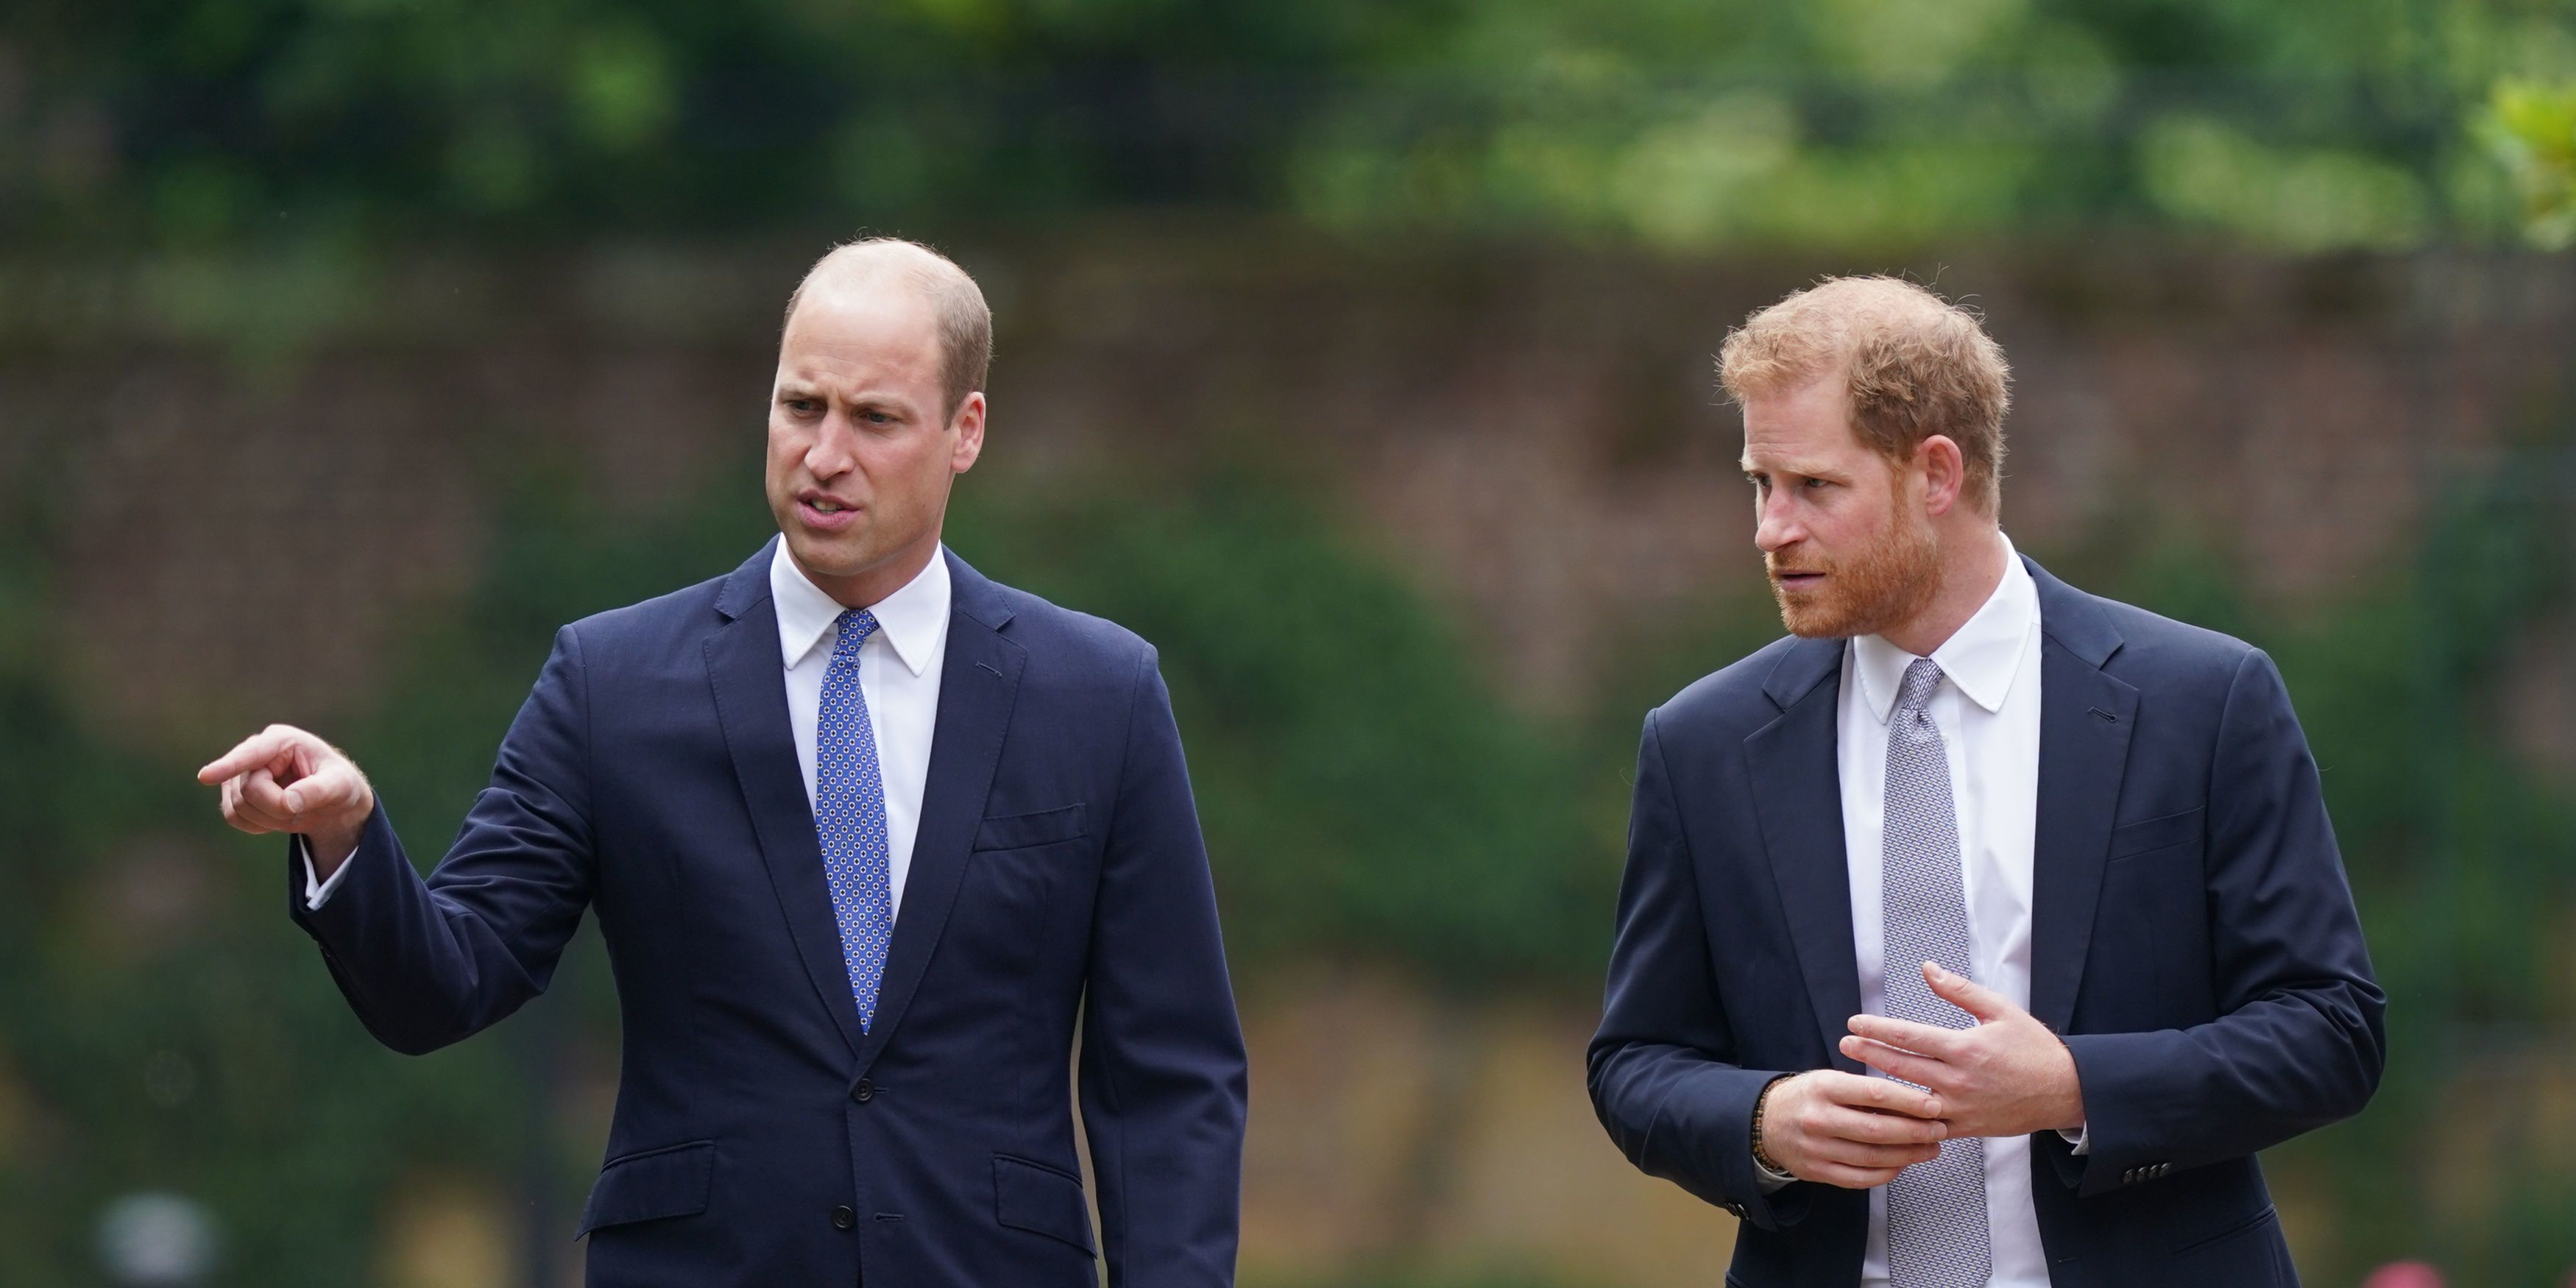 Prince William Mentions Prince Harry in Speech at Diana Event